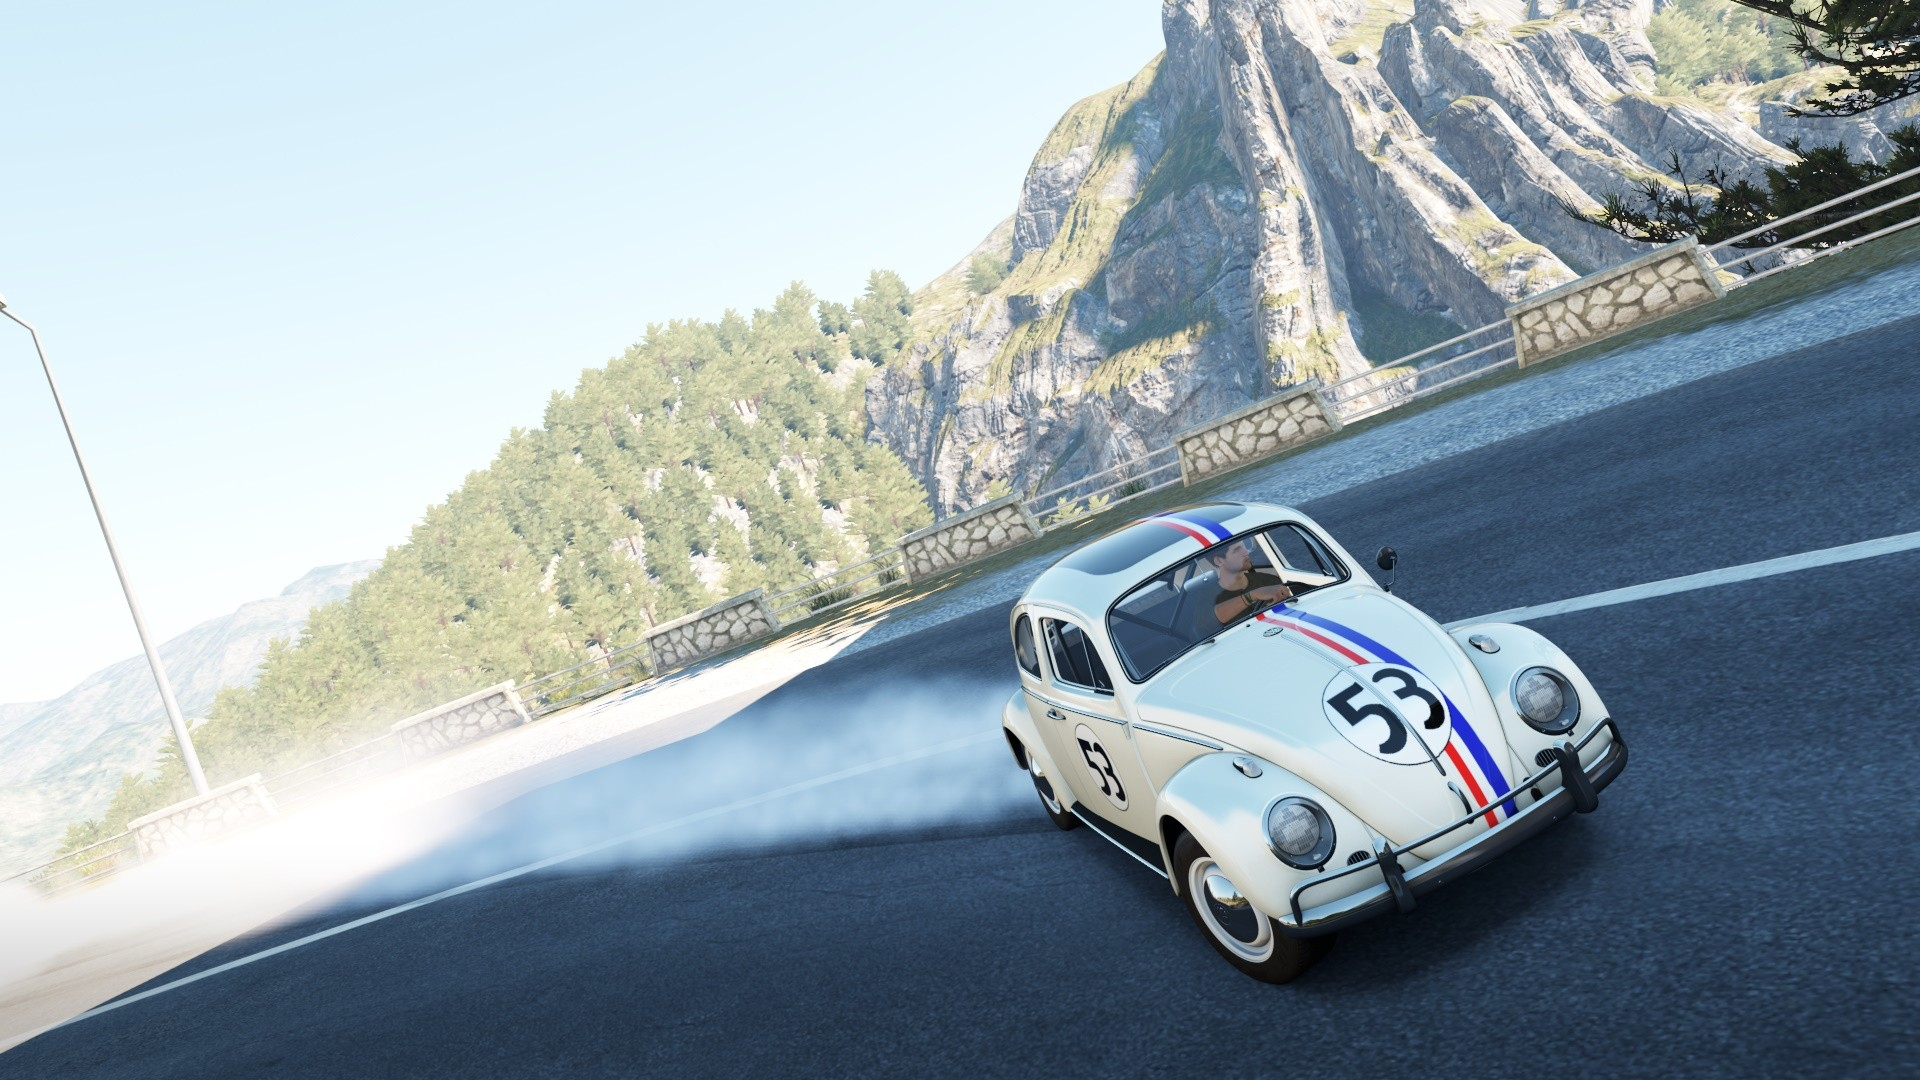 Res: 1920x1080, Herbie Mountain Drift by DrifterXRacer Herbie Mountain Drift by  DrifterXRacer